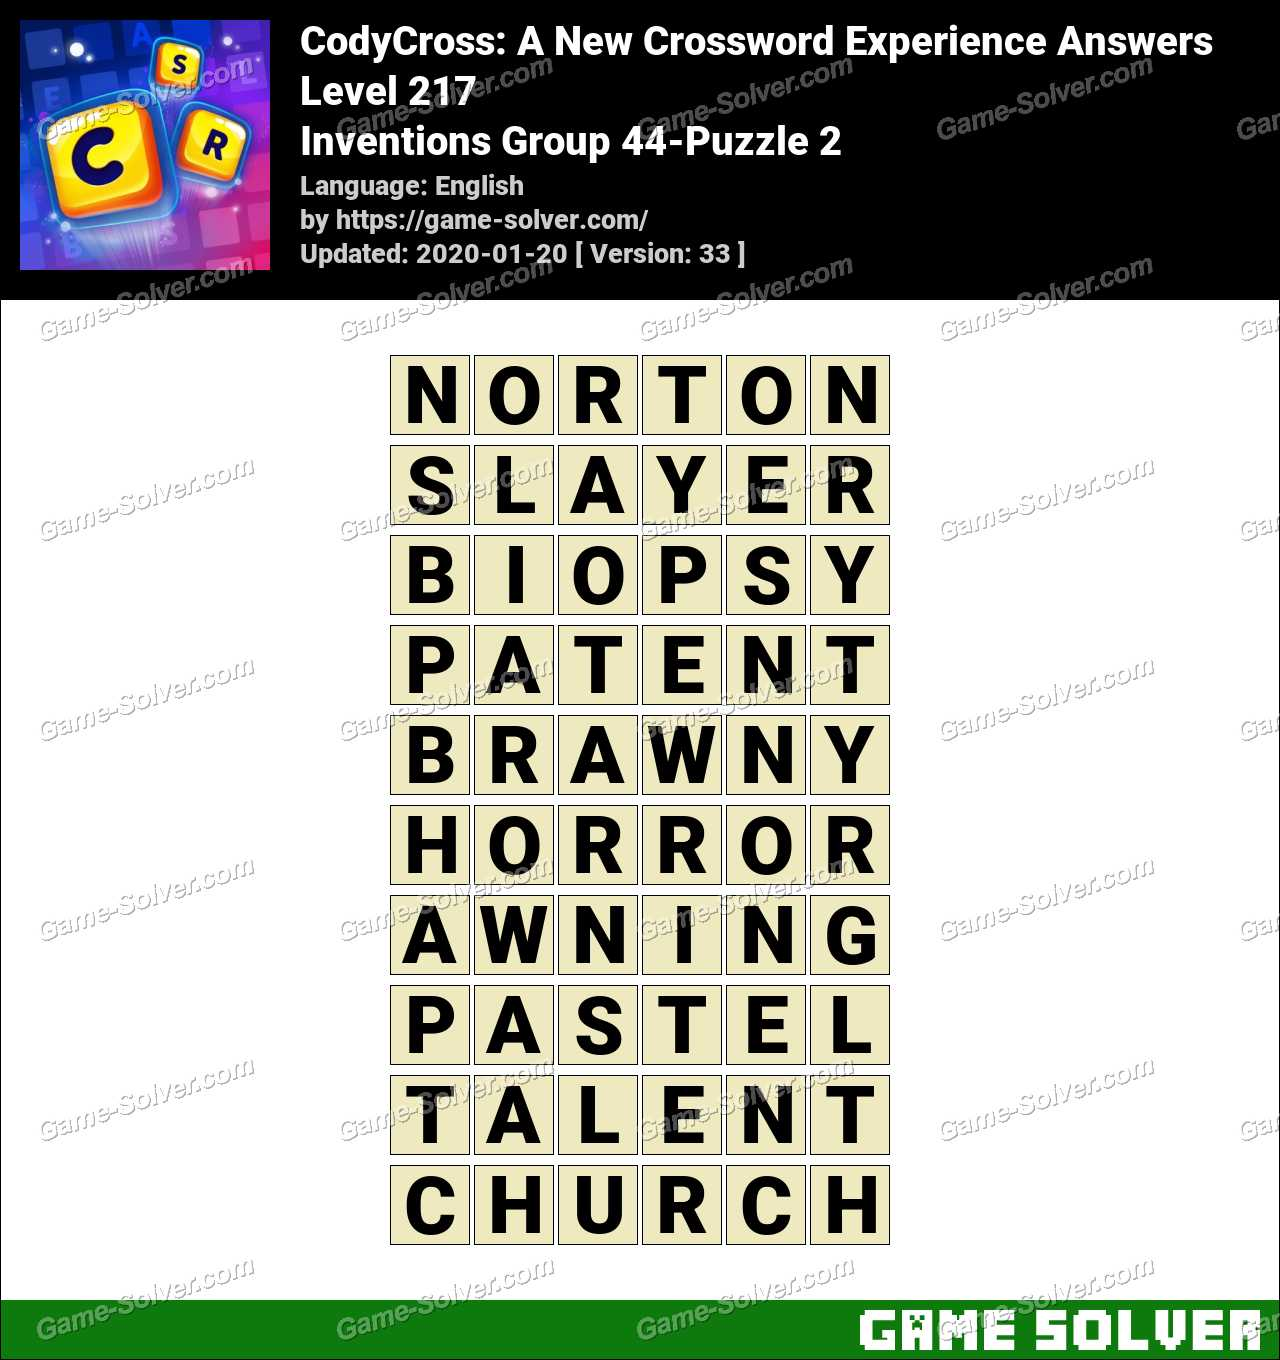 CodyCross Inventions Group 44-Puzzle 2 Answers